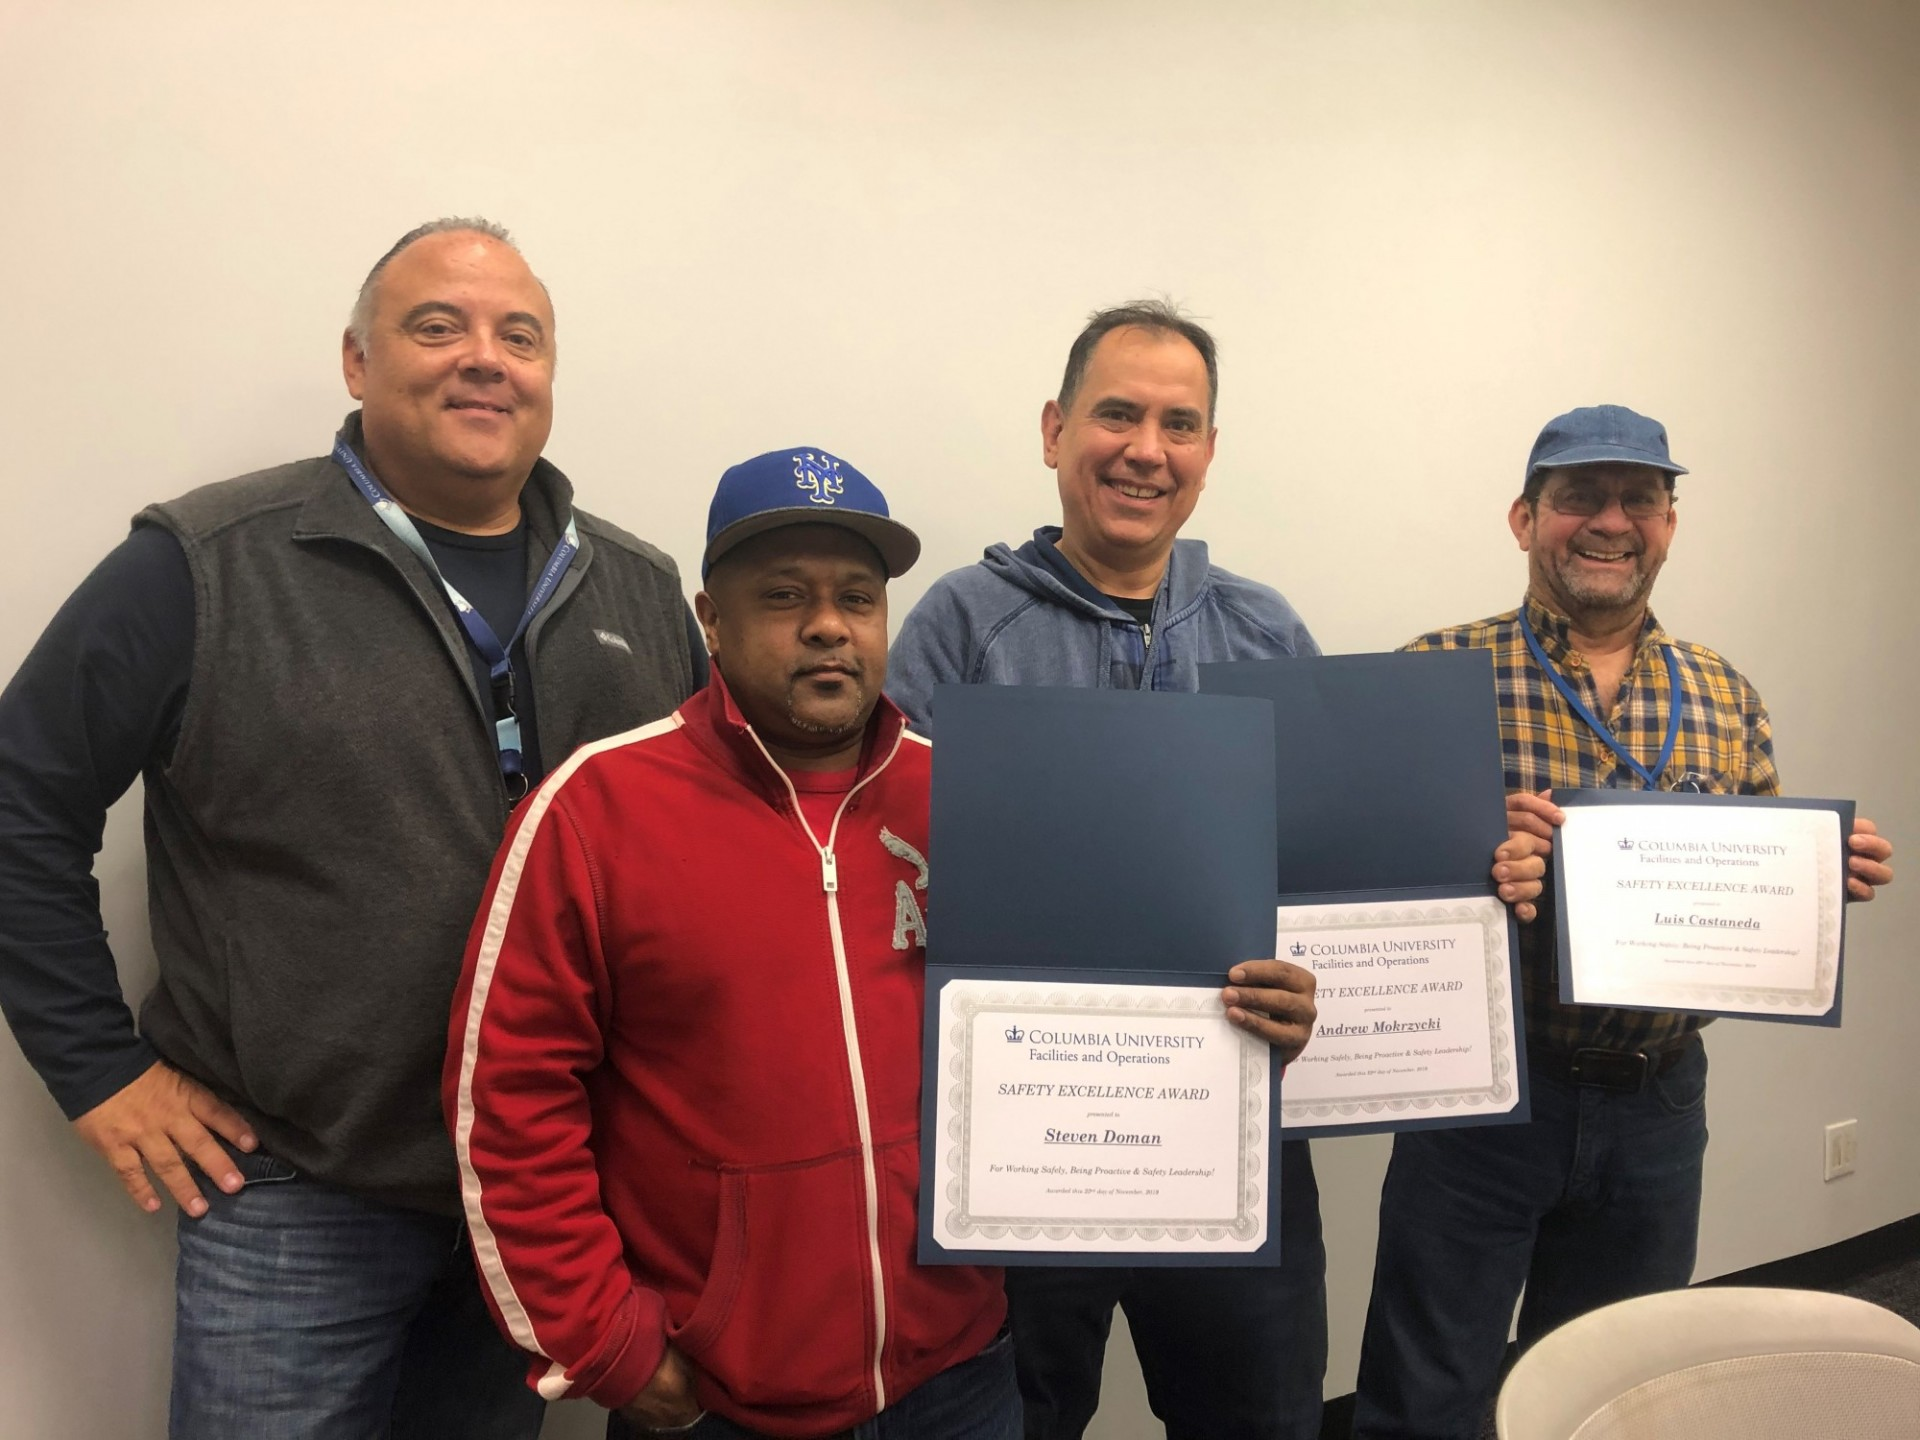 Honorees at the 2019 Safety Excellence Awards Ceremony at the Morningside Campus